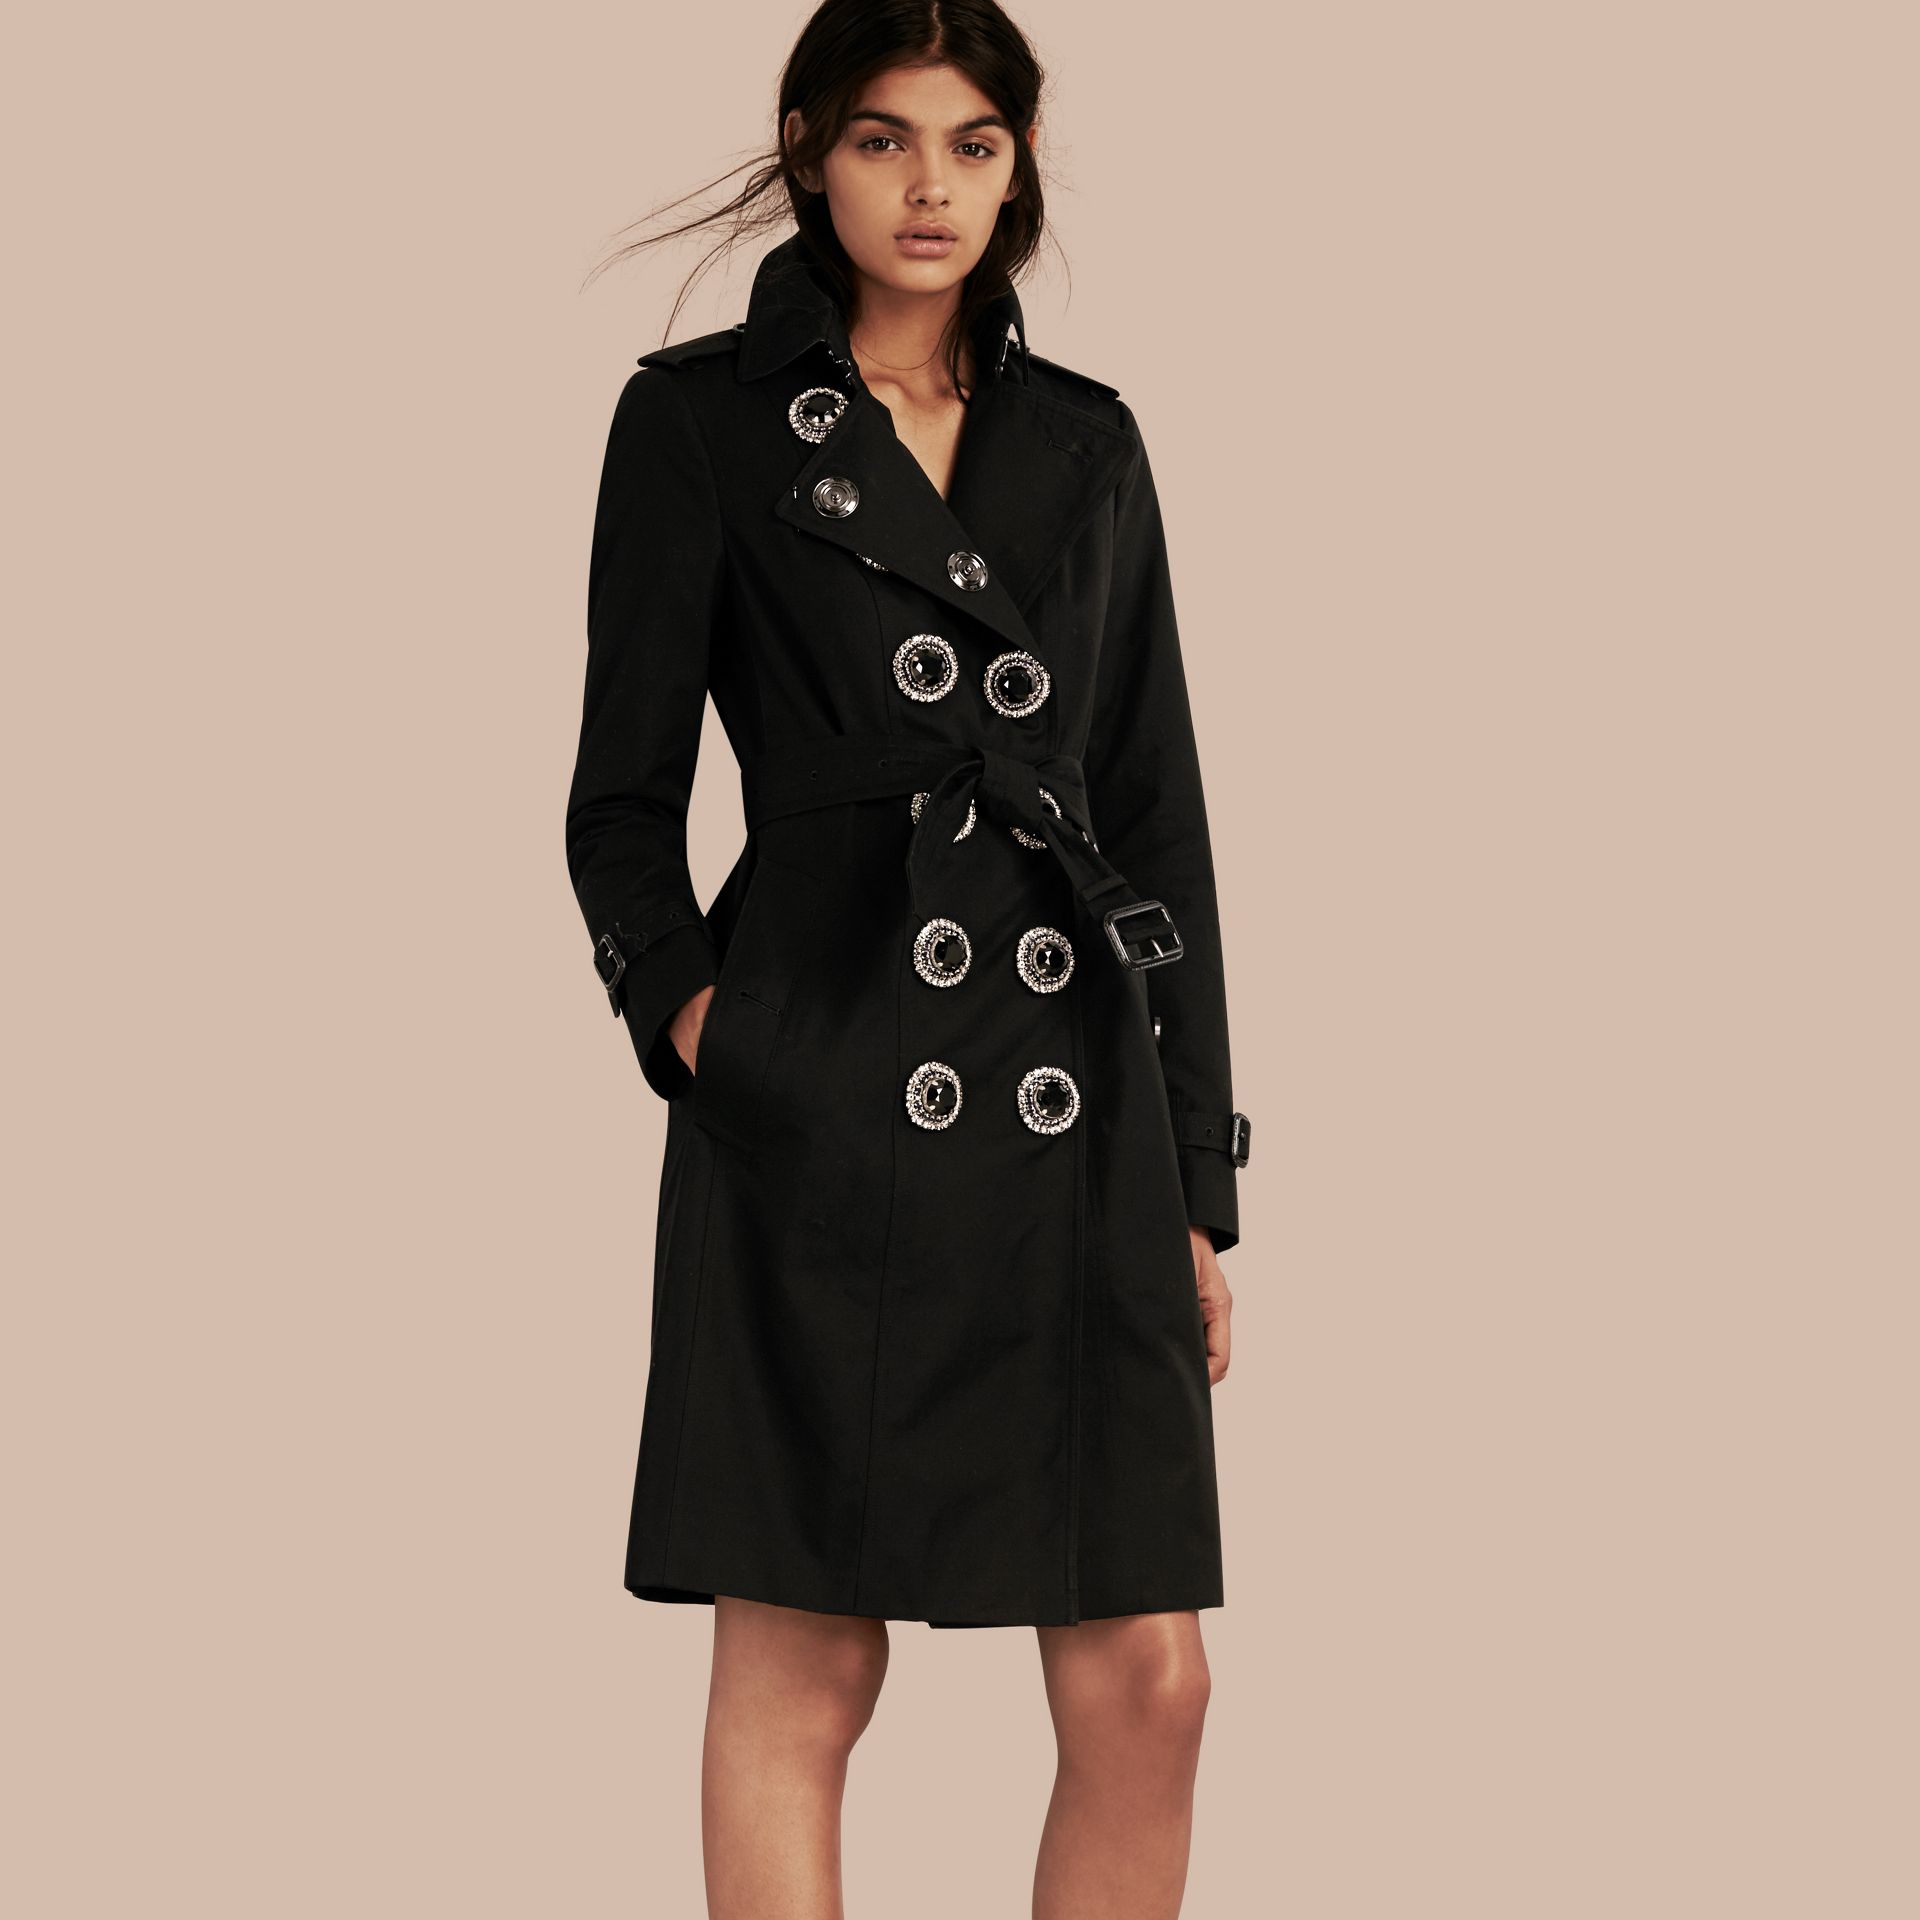 Black Cotton Gabardine Trench Coat with Embellished Fastening - gallery image 1